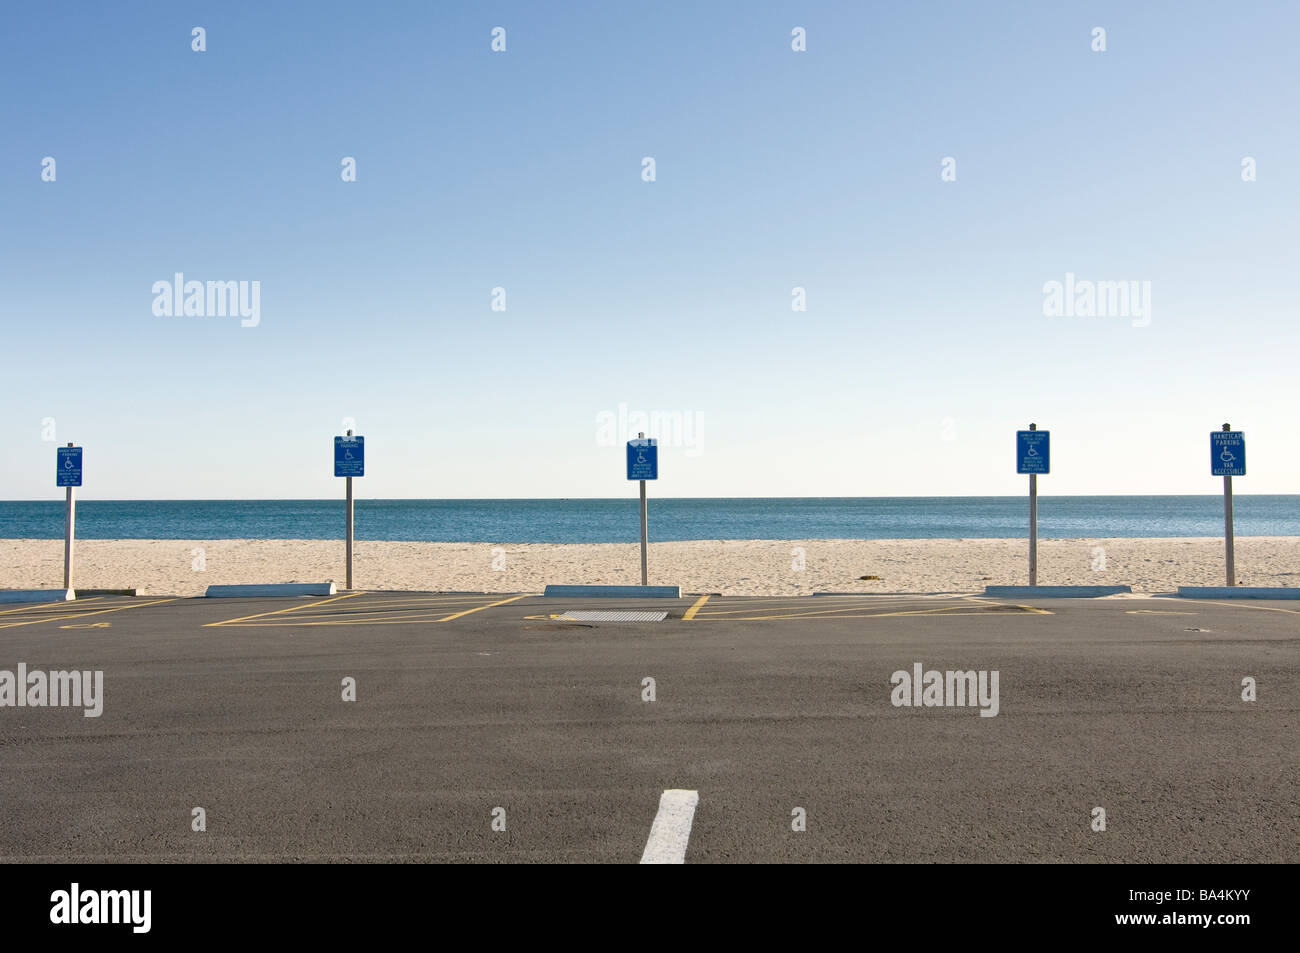 Handicap parking signs and parking spaces at beach - Stock Image